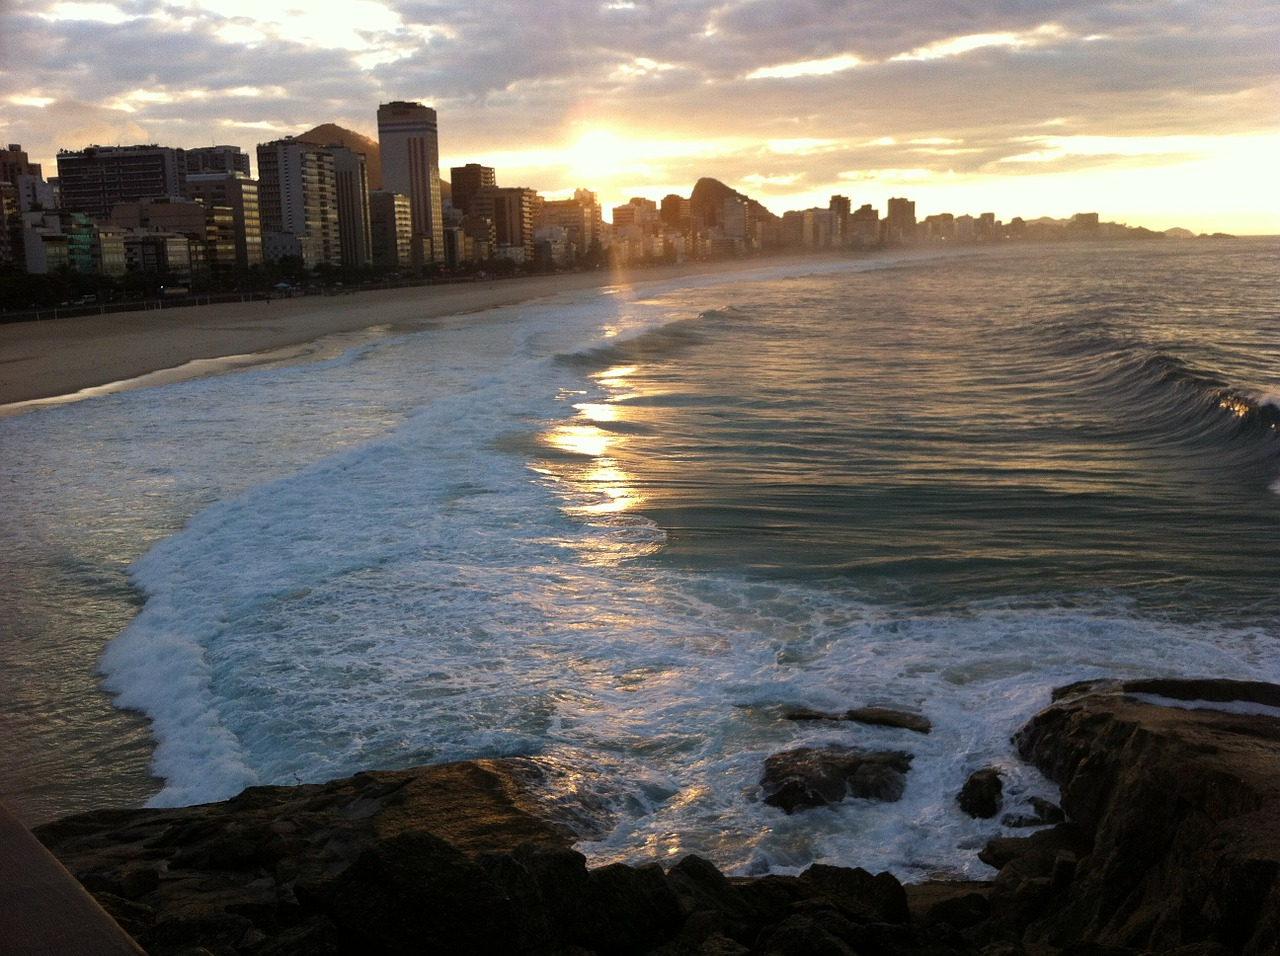 copacabana-beach-65598_1280